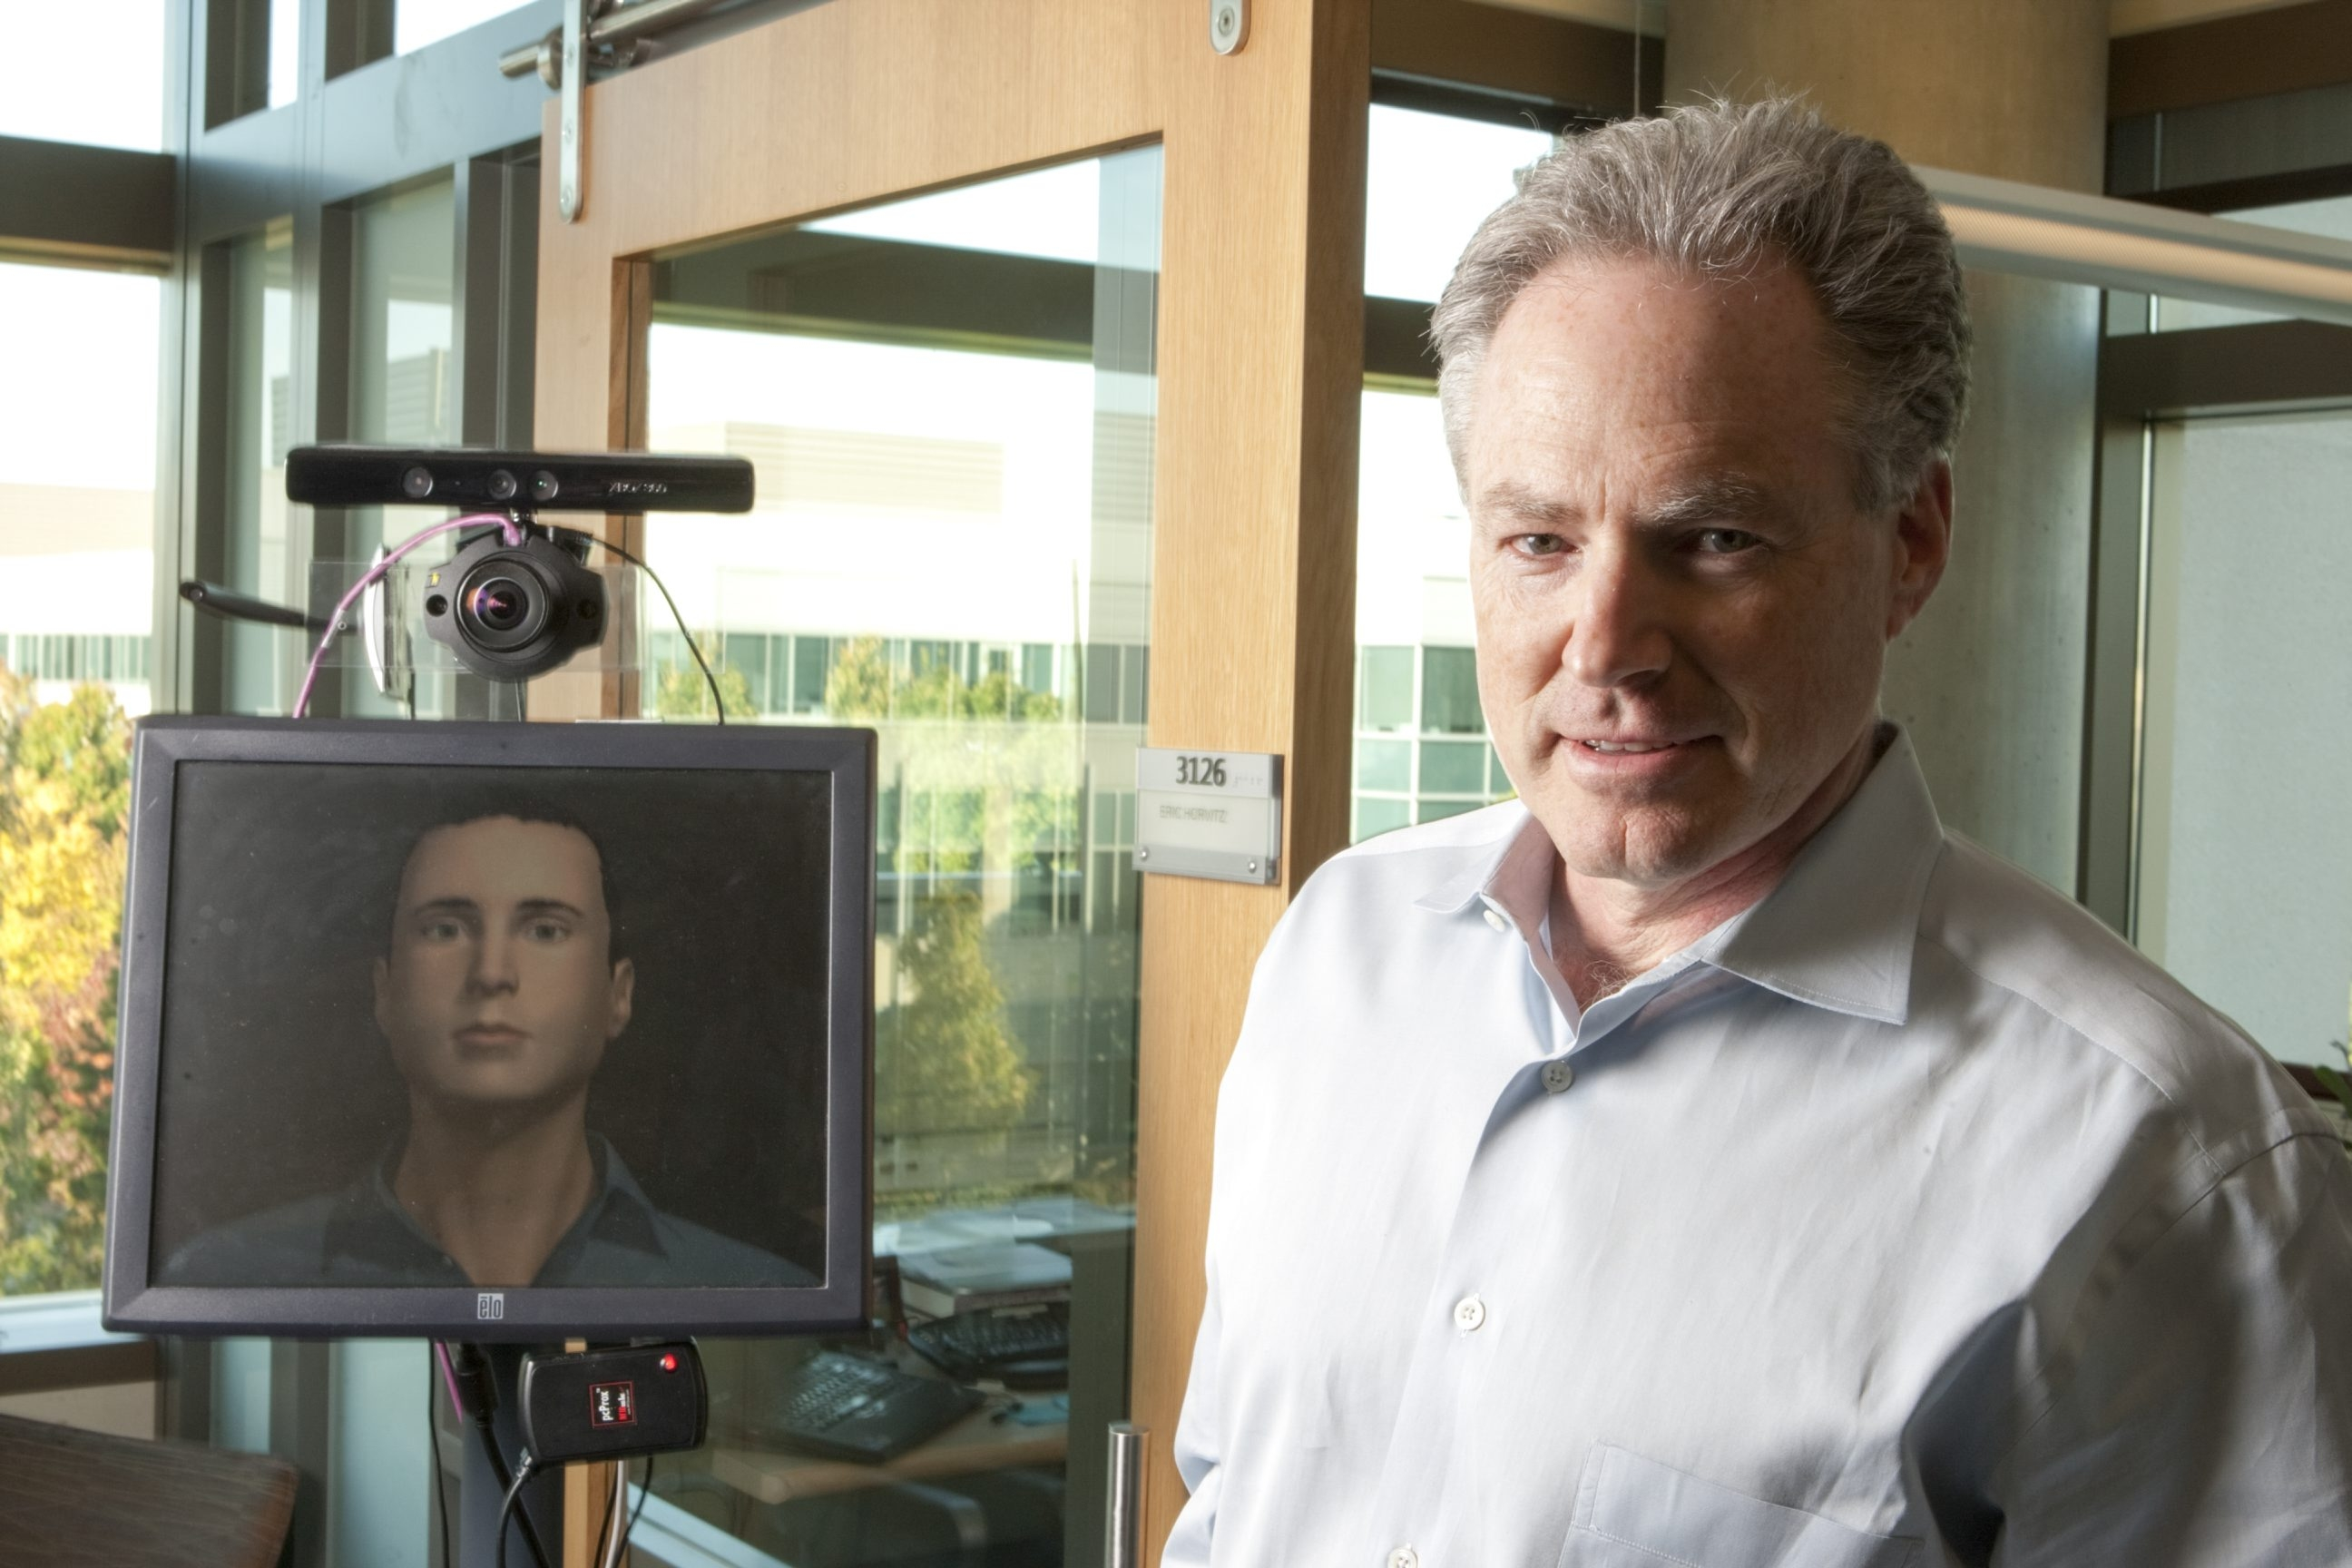 FILE — Eric Horvitz, co-director of Microsoft Research, stands next to a robot in his office in Redmond, Wash., Oct. 3, 2012. A modern spin on age-old Luddite fears has crept into our understanding of technological innovations, as information technology creeps into occupations that have historically relied on brainpower and threaten to wreak havoc on the job market. (Kevin P. Casey/The New York Times)